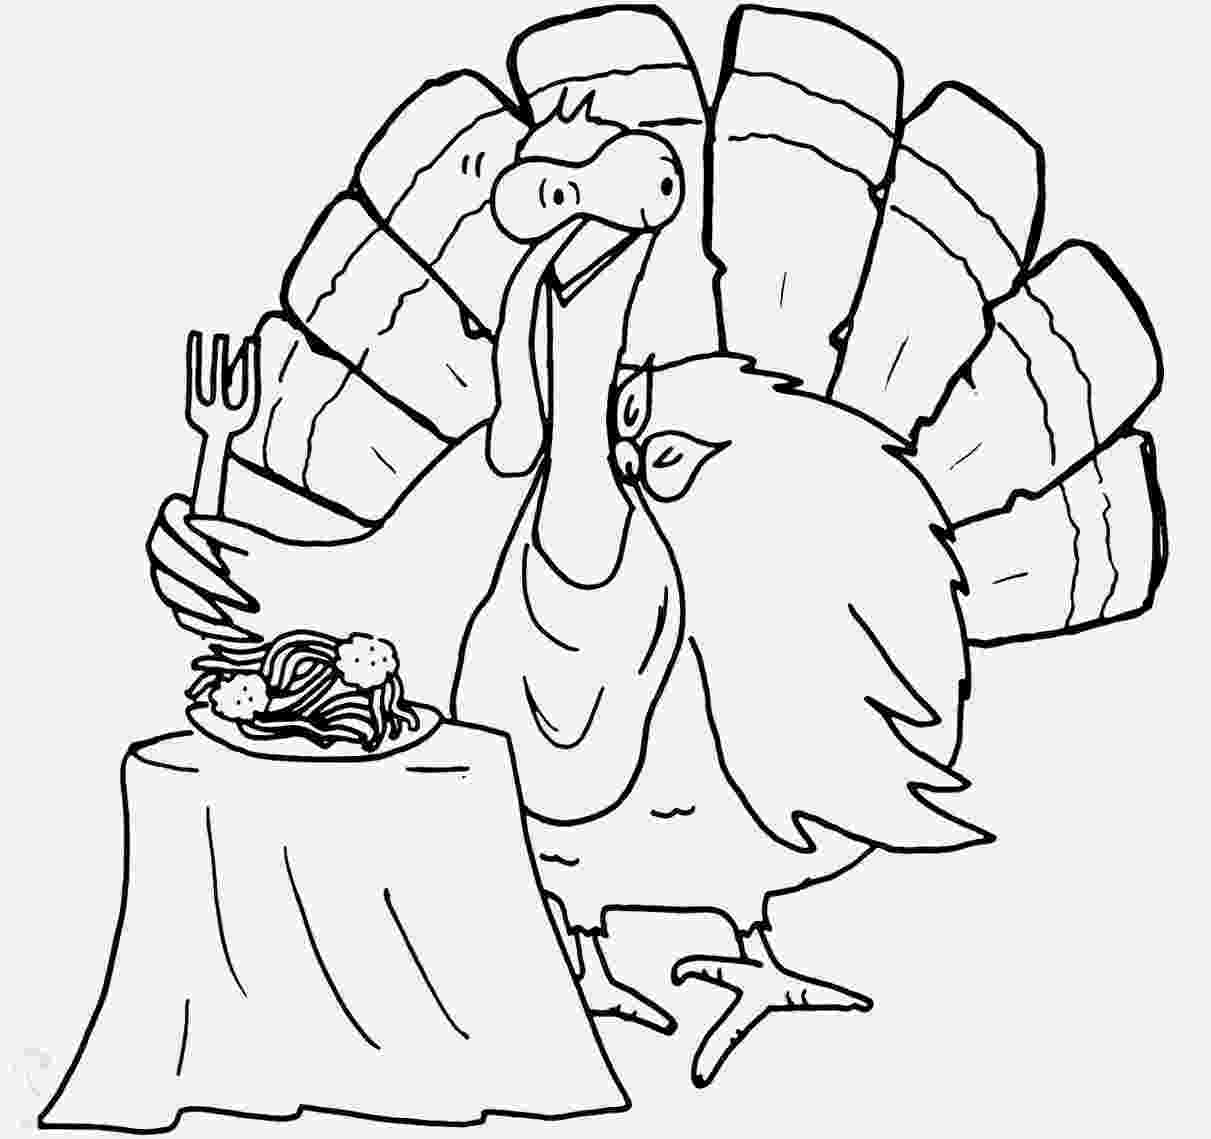 turkey coloring sheet coloring pages turkey coloring pages free and printable sheet coloring turkey